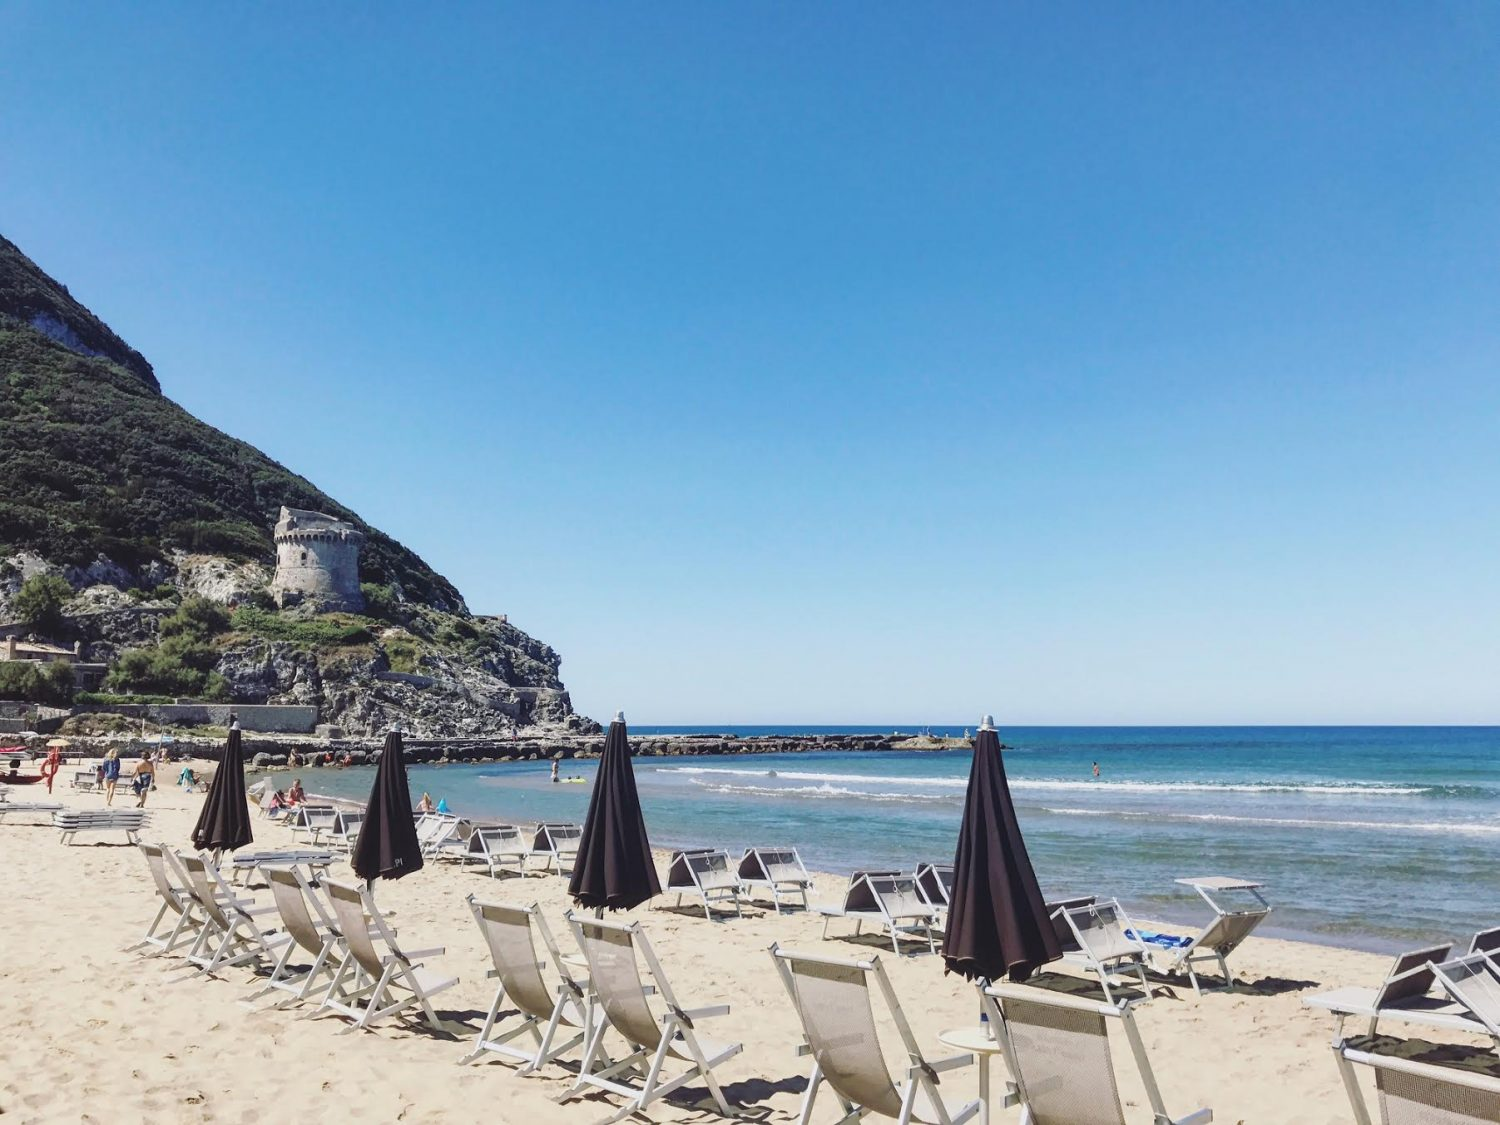 Seaside towns near Rome: a weekend in Sabaudia